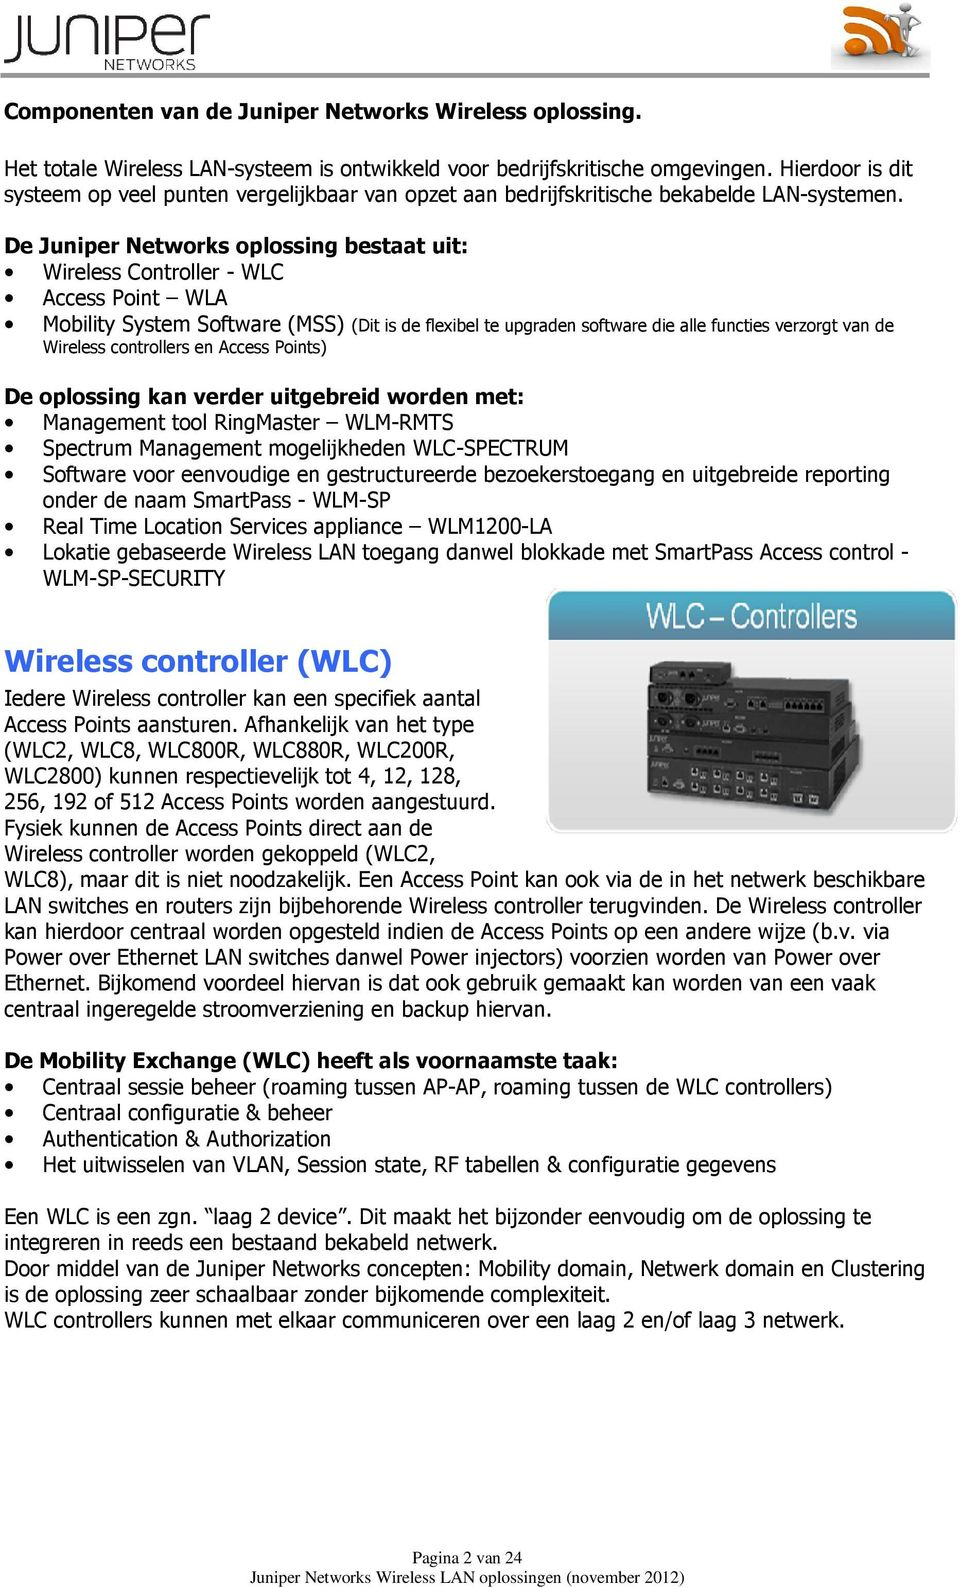 De Juniper Networks oplossing bestaat uit: Wireless Controller - WLC Access Point WLA Mobility System Software (MSS) (Dit is de flexibel te upgraden software die alle functies verzorgt van de